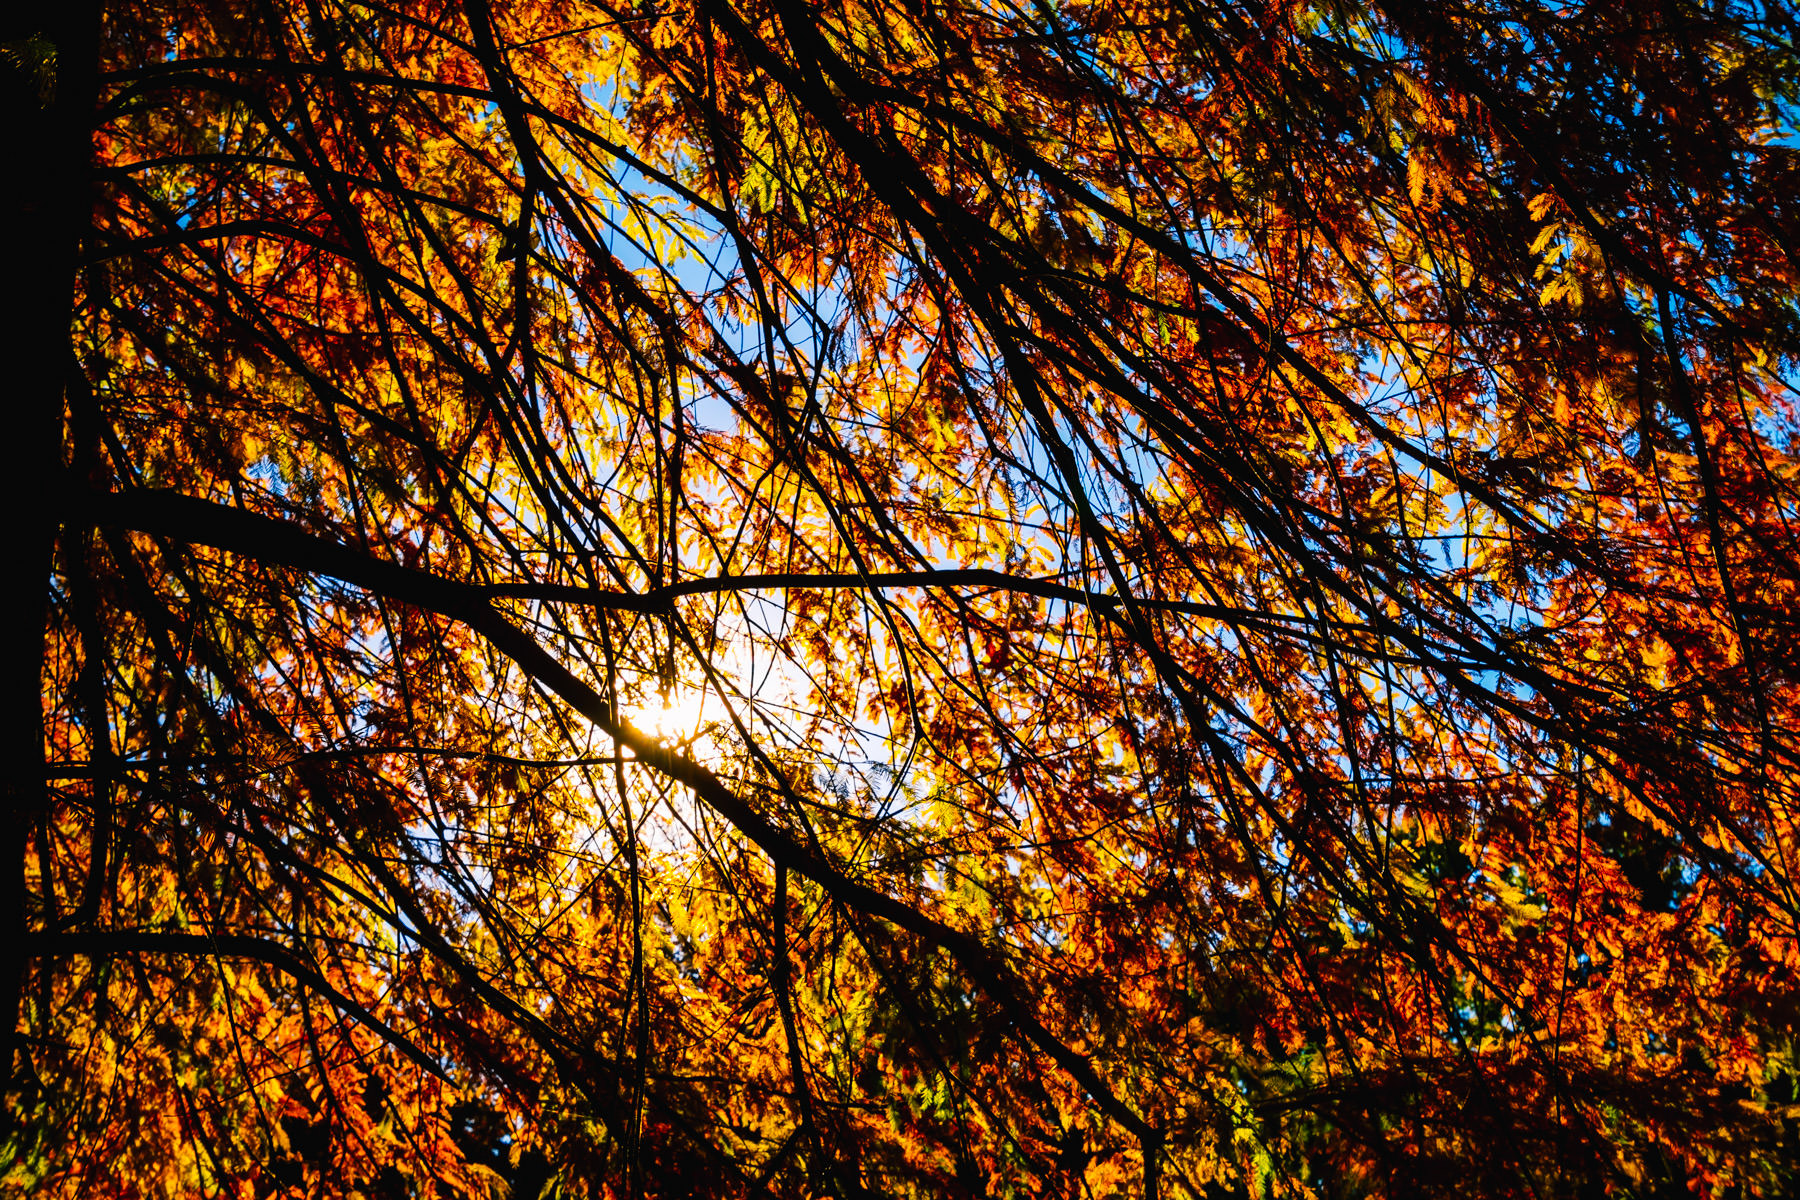 The sun shines through the multi-colored leaves of a tree in Tyler, Texas' Bergfeld Park on a cool autumn day.